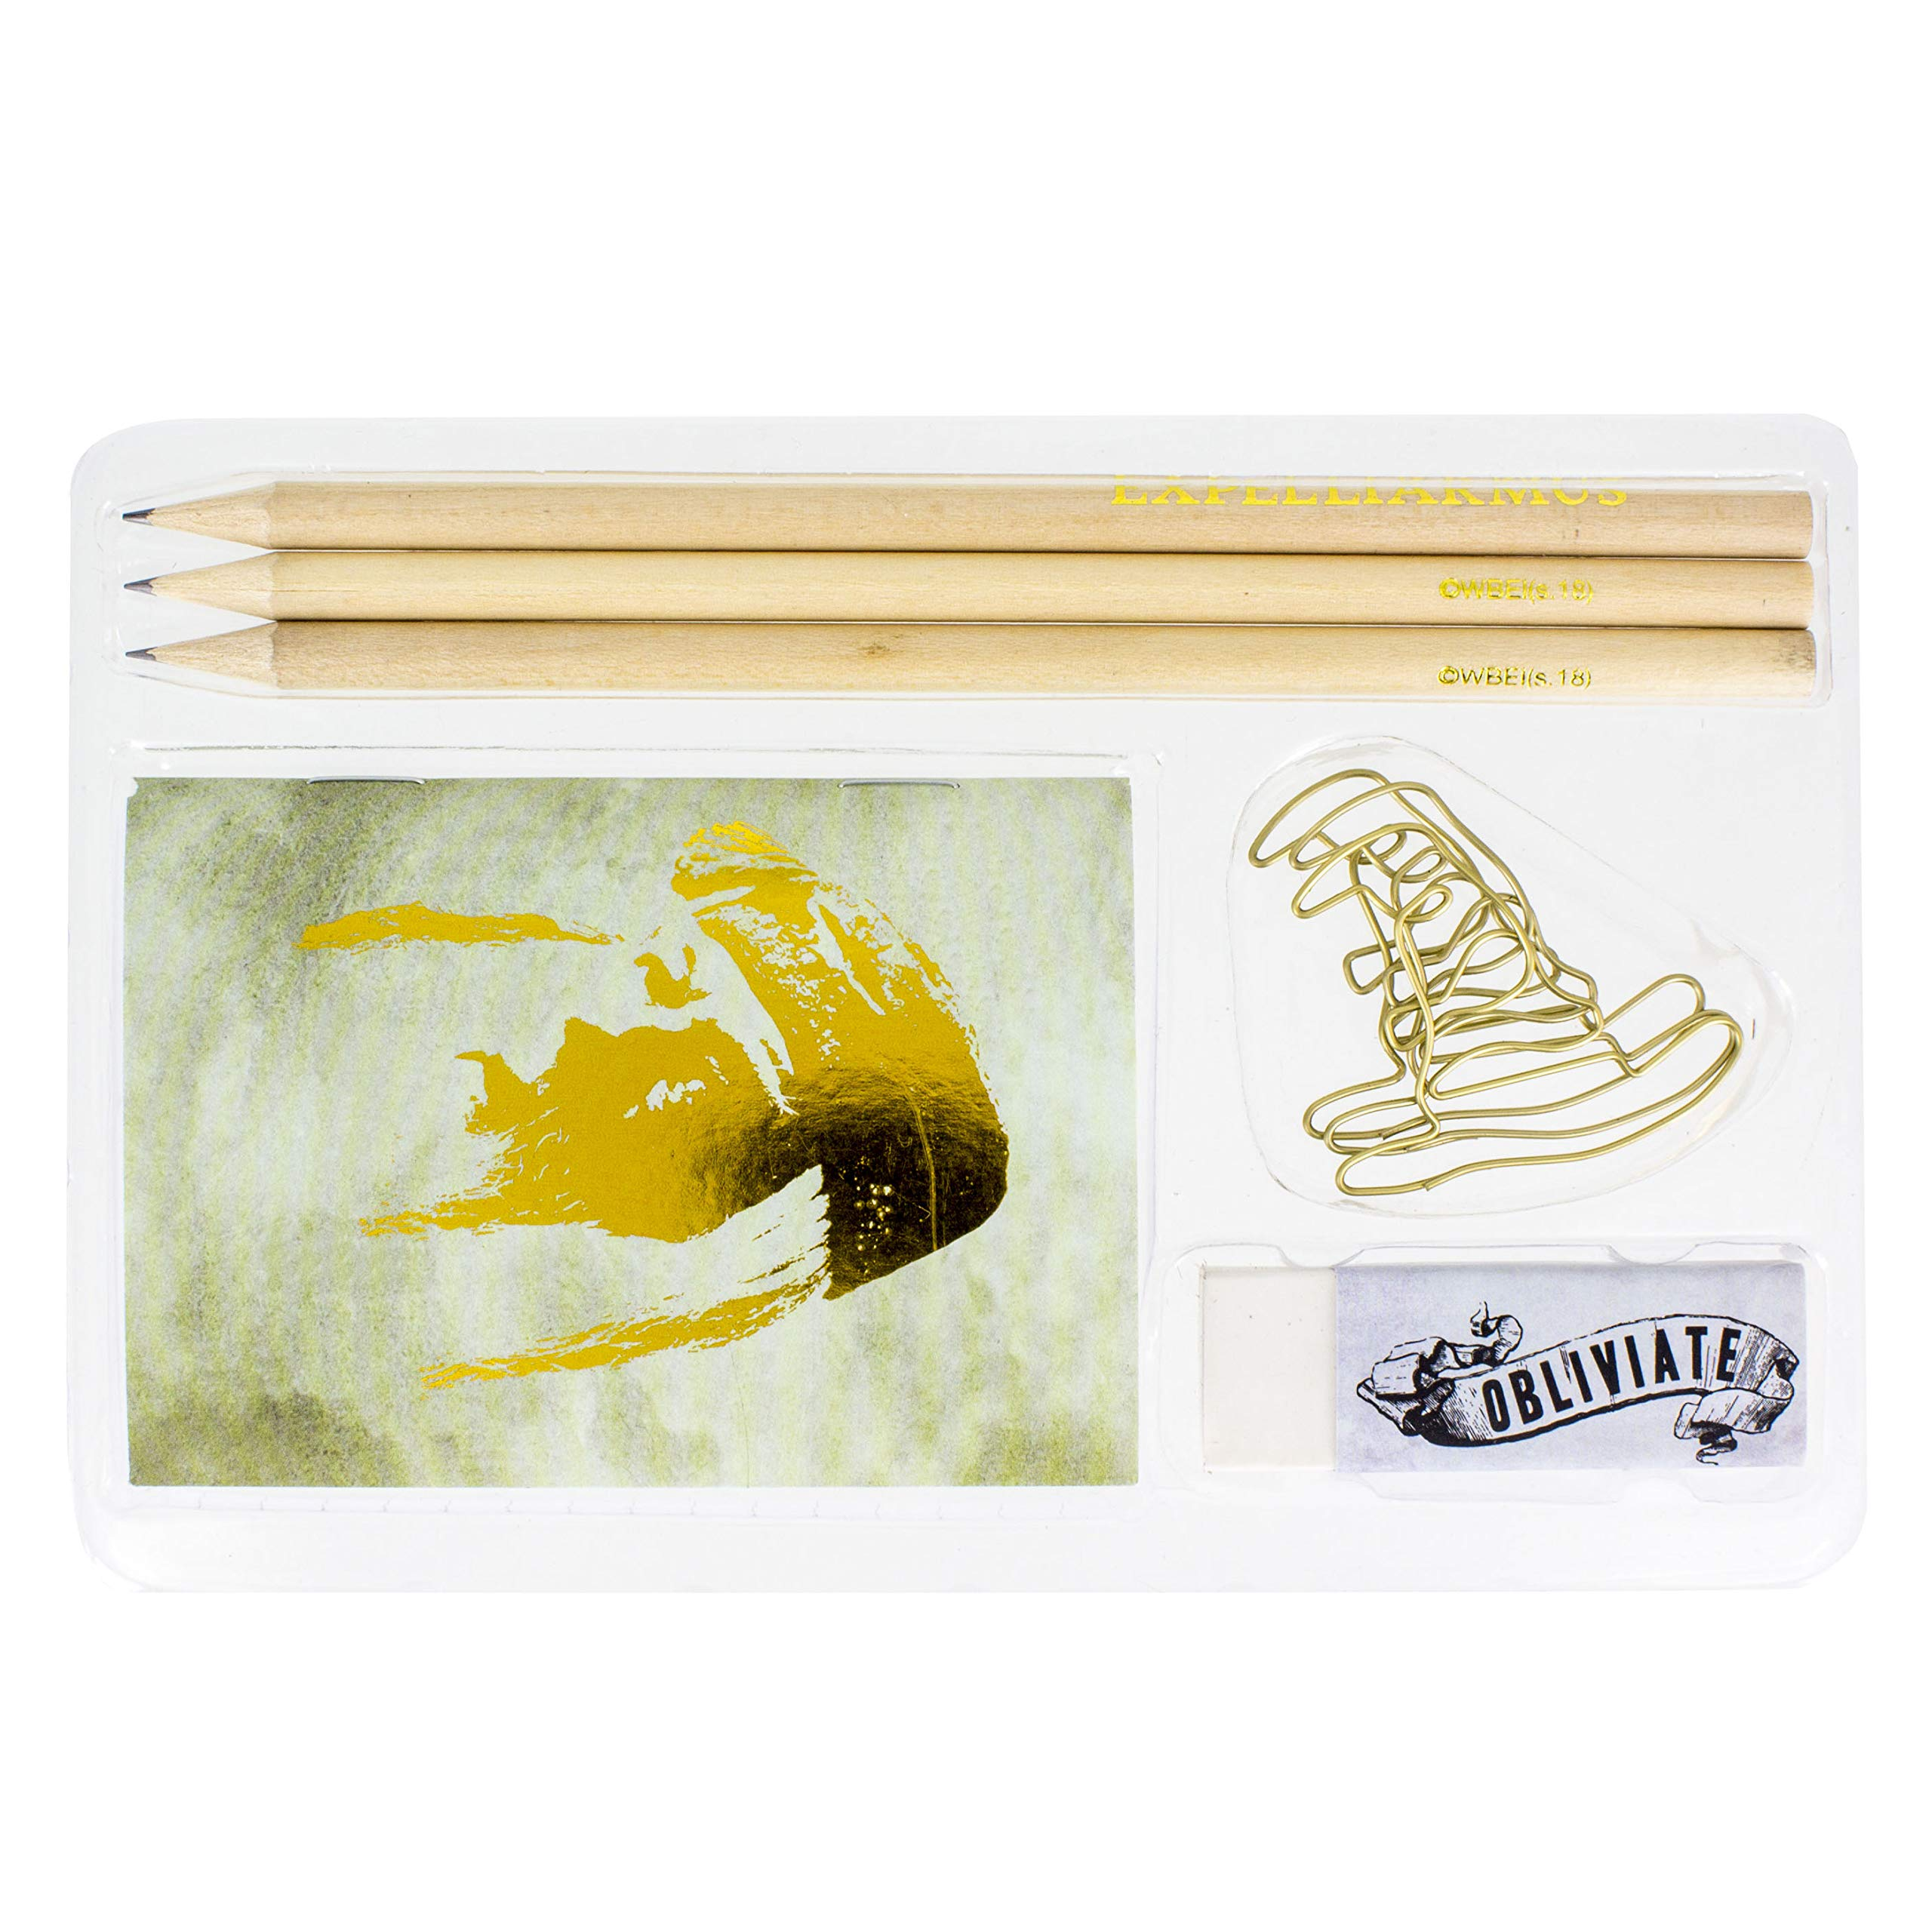 Hogwarts Stationery Set-School and Office Supplies - Harry Potter Officially Licensed Product